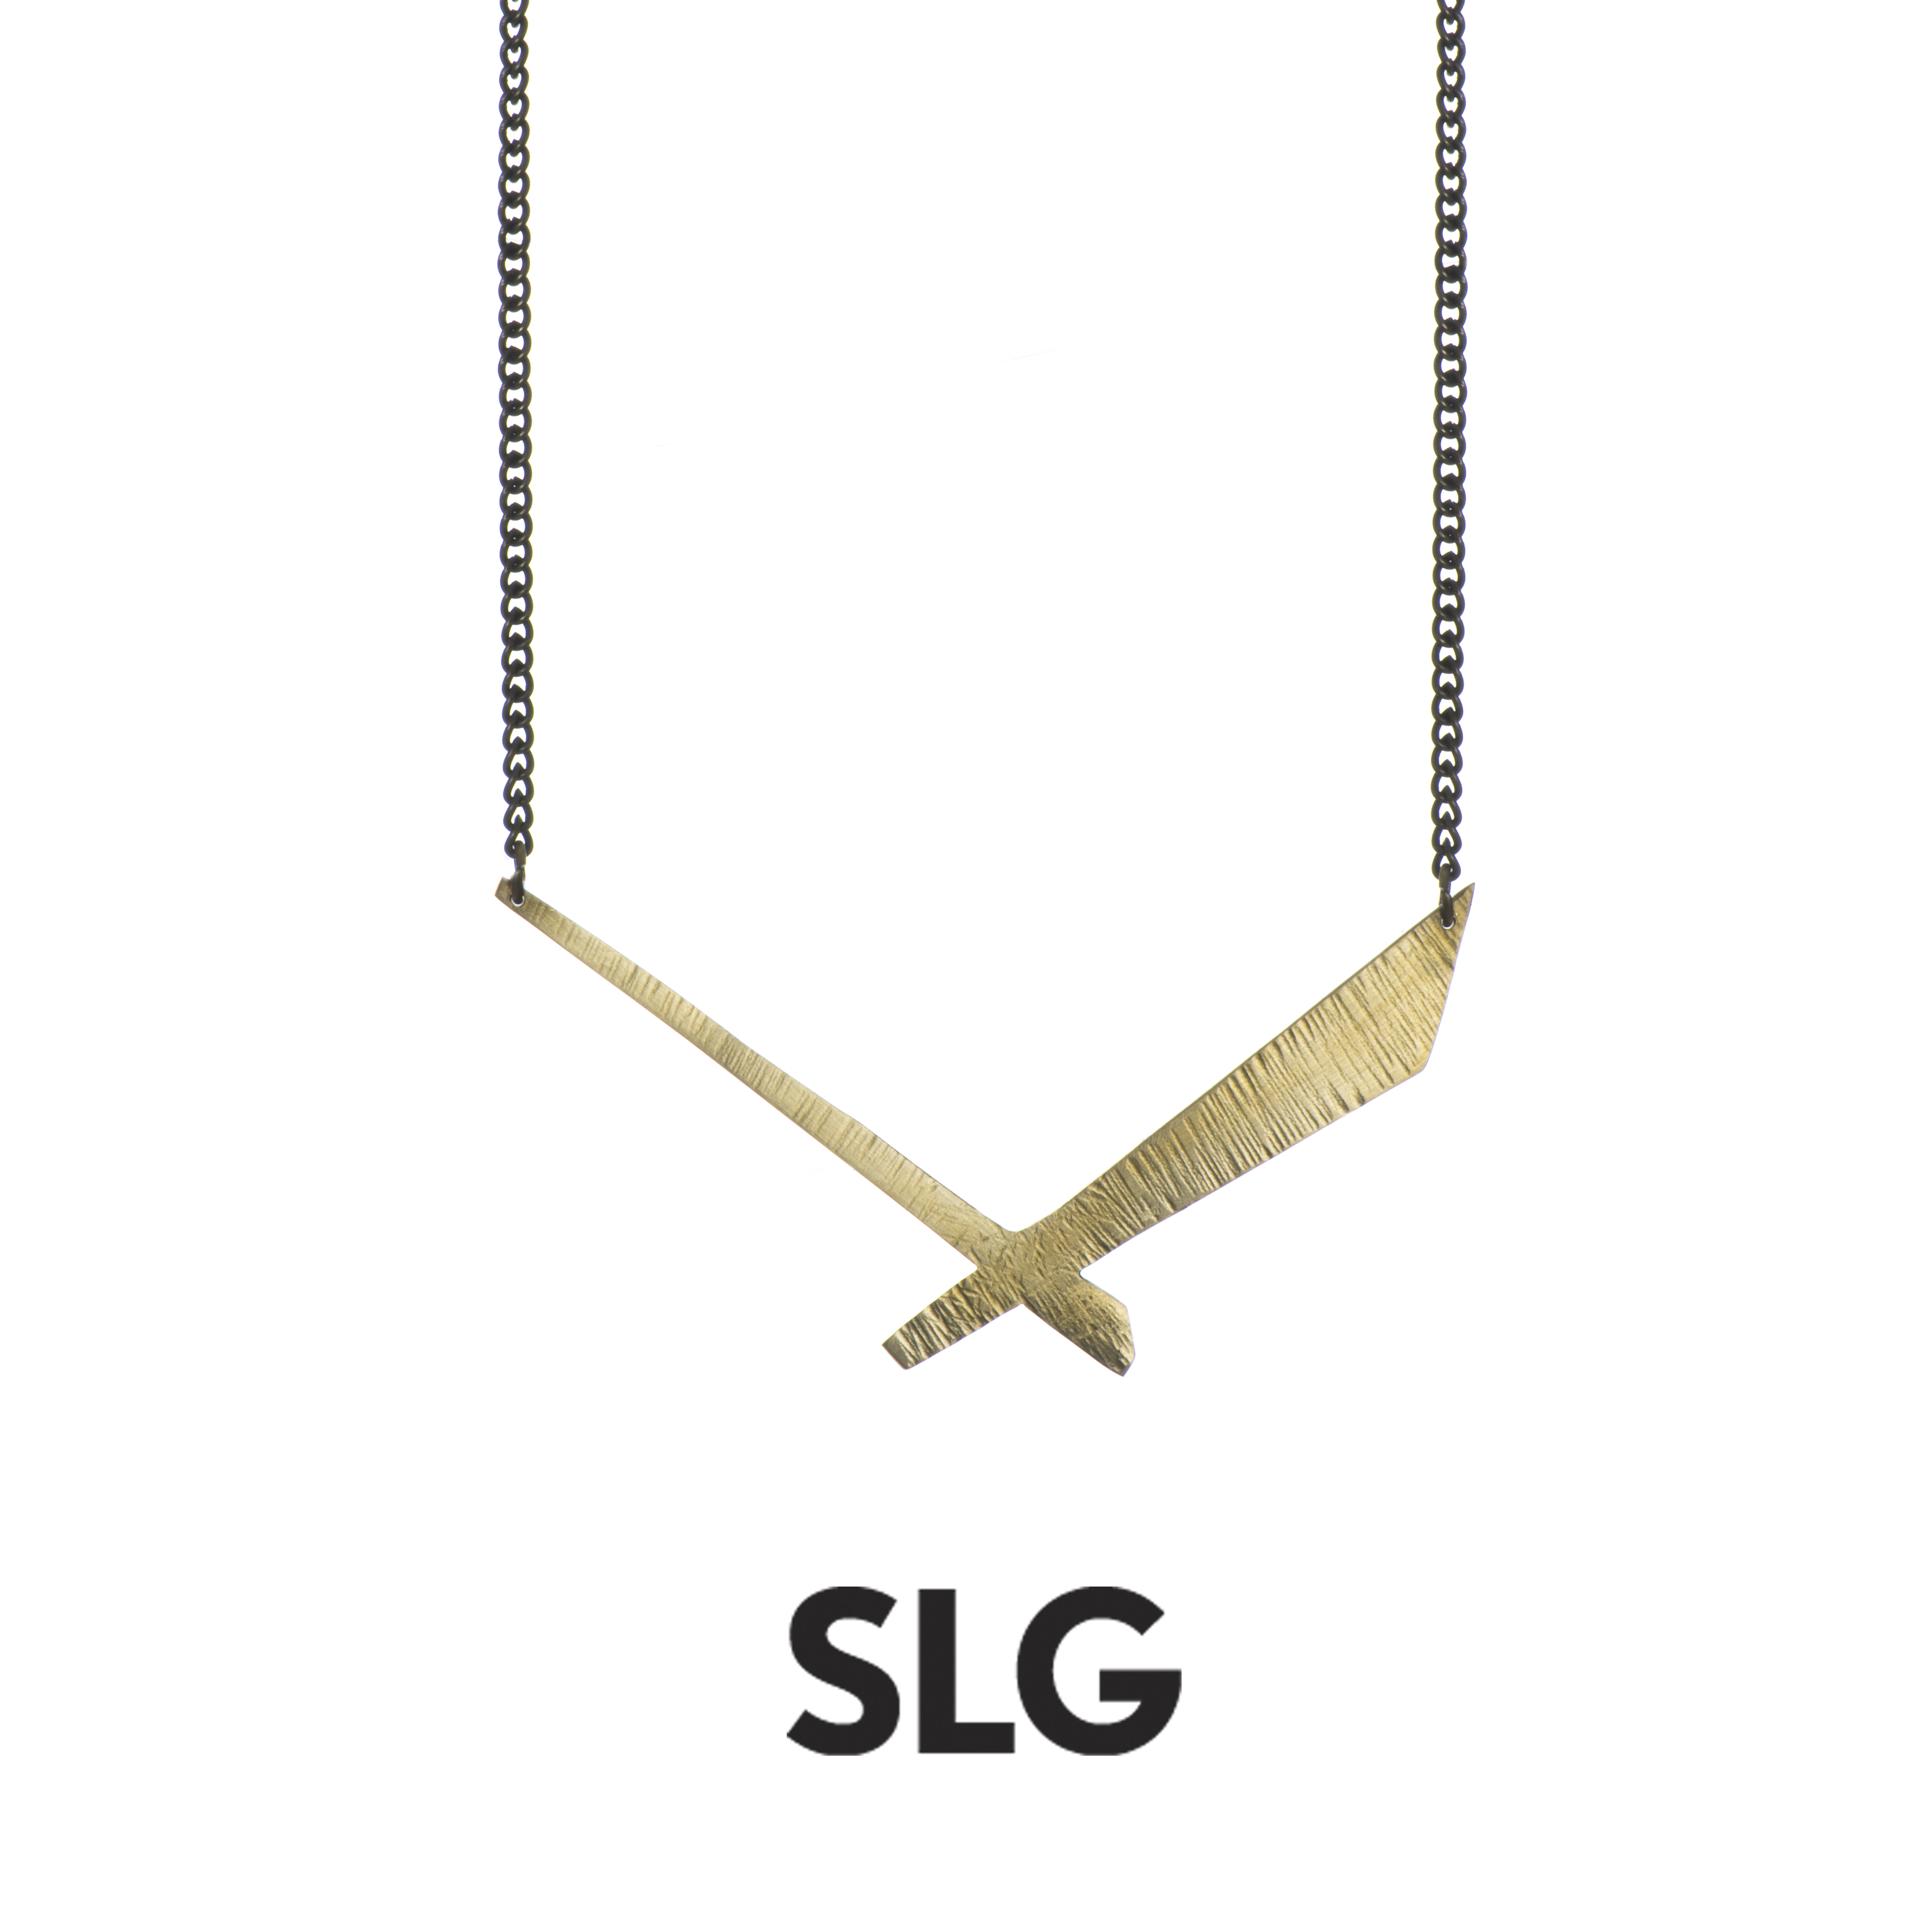 SLG_BeamNecklace